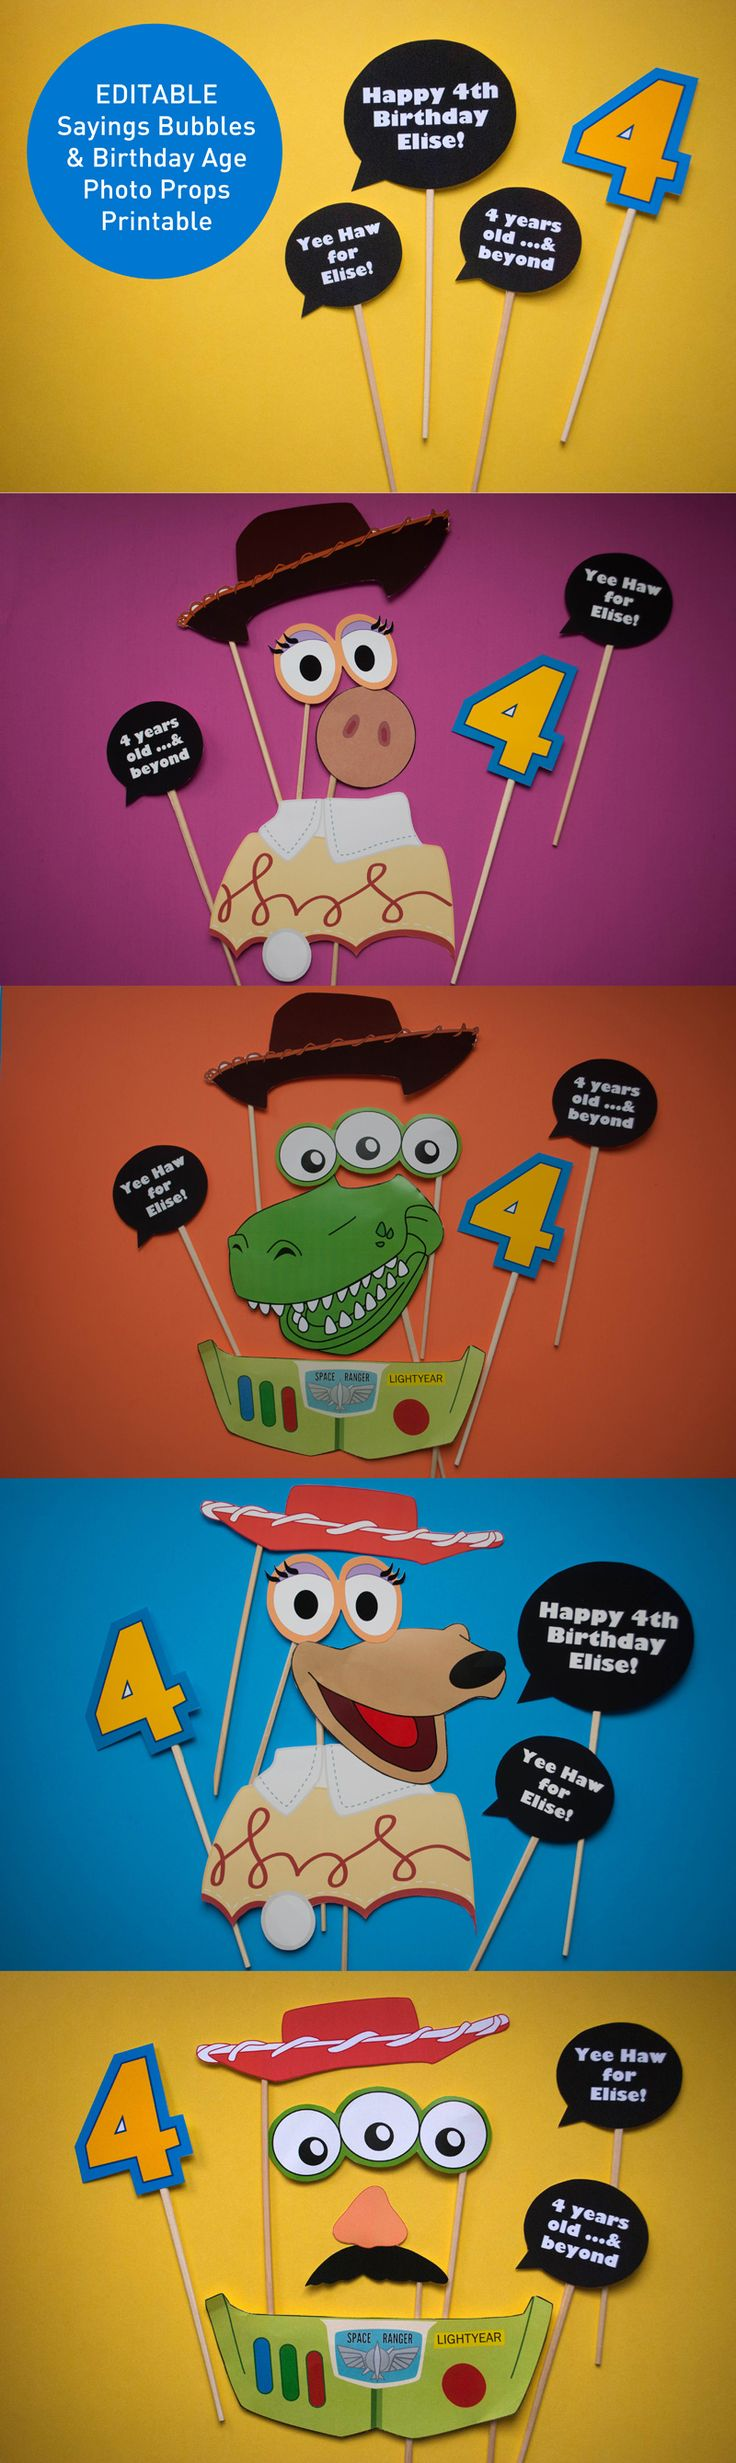 EDITABLE Sayings Bubbles and Birthday Ages for a Toy Story birthday party – just type into the printable PDF to personalize. Combine with free Toy Story props for a rootin' tootin' birthday party!